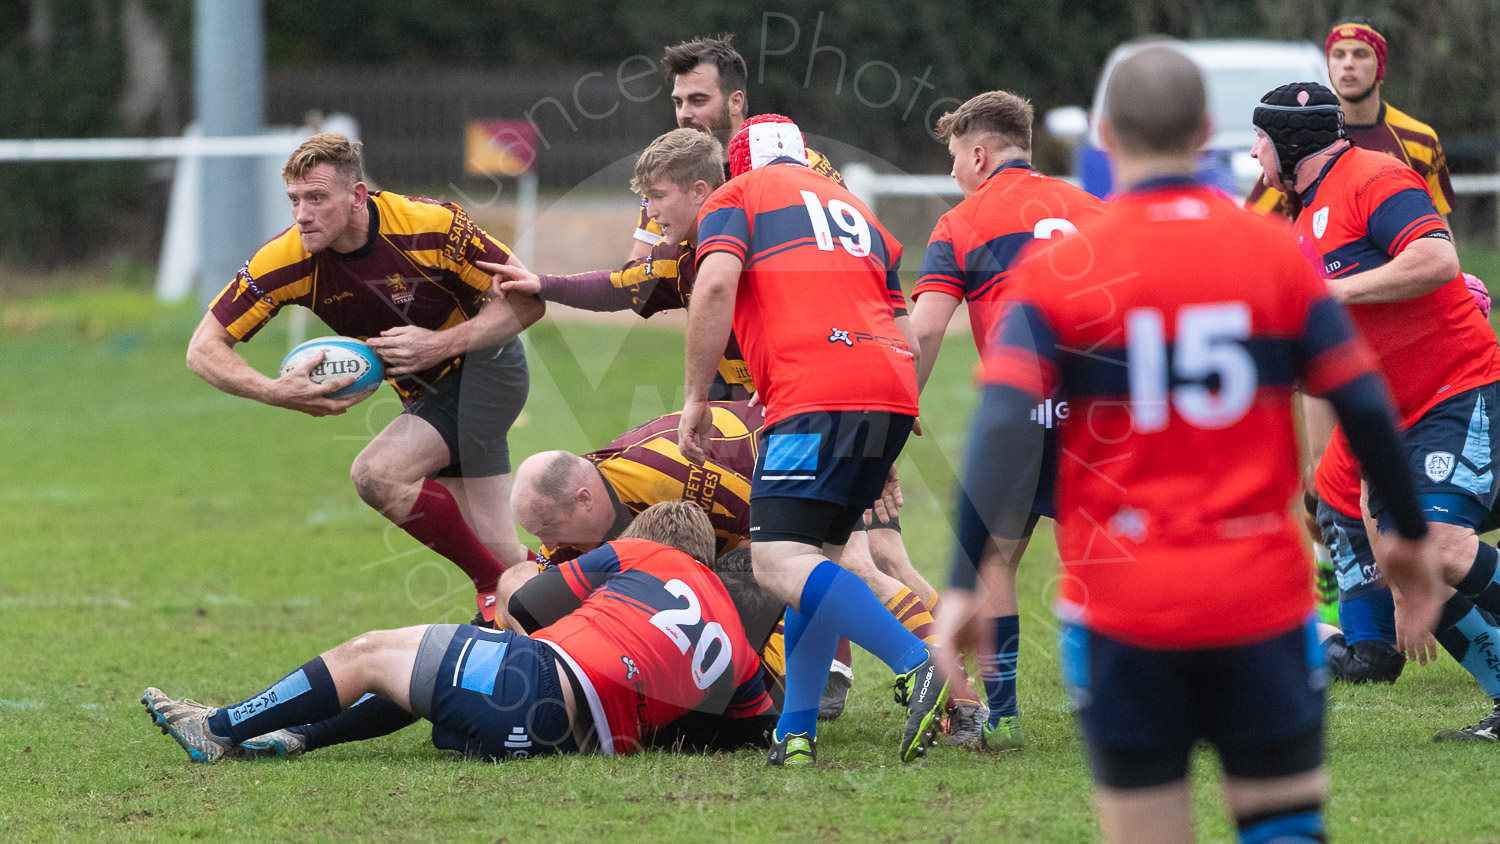 20181027 Amp Extras vs St Neots 2nd XV #2451